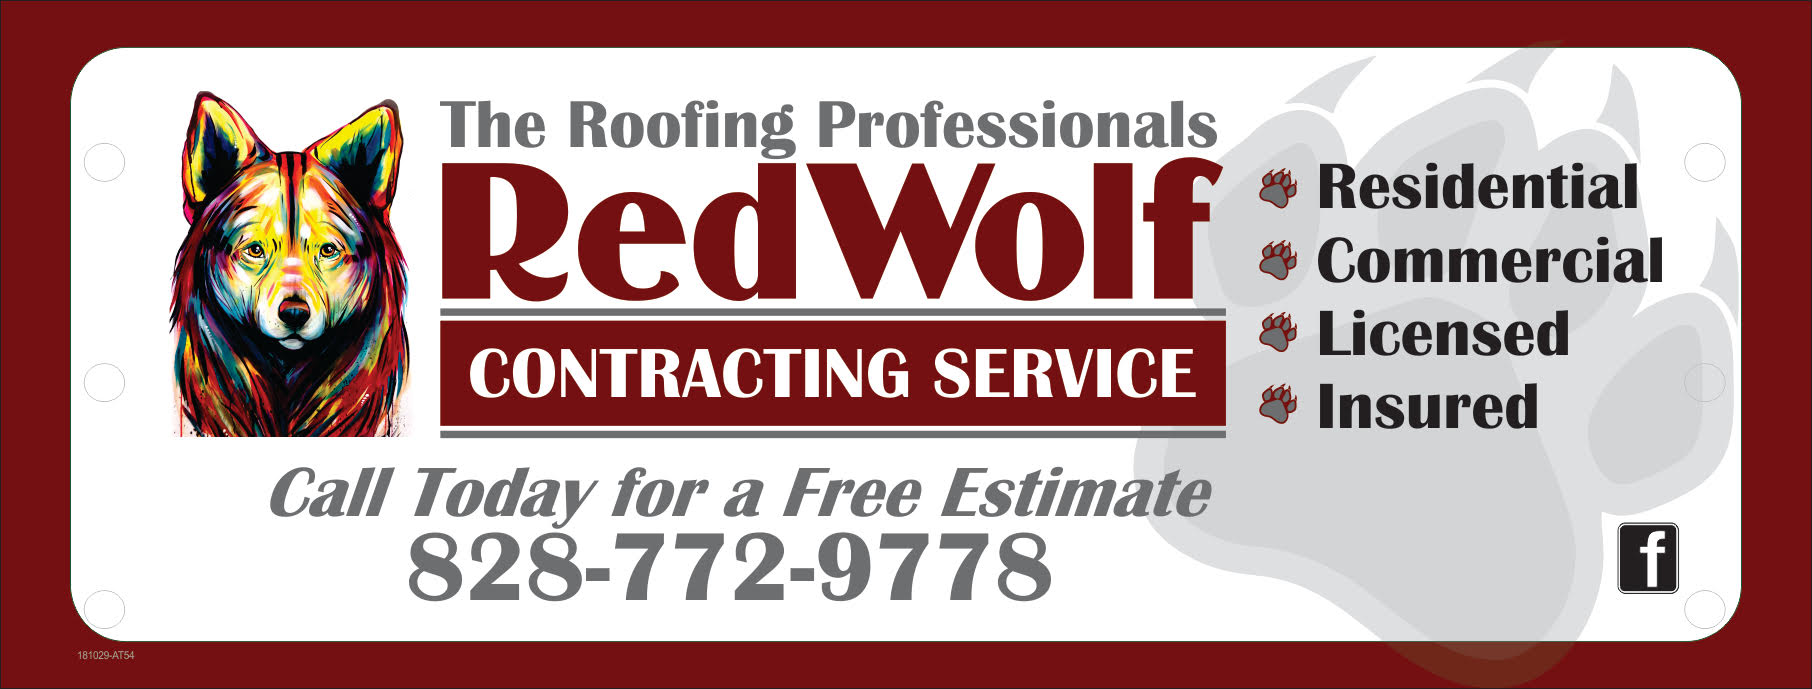 Are you in need of  replacing your roof, but not sure who to trust with the job.  Matt at RedWolf Contracting Services is the man to call!  He will provide you with a free evaluation and estimate, and has the references to back up his good name!  Give him a call (828)772-9778 to schedule your free estimate today.   www.nc-roofers.com